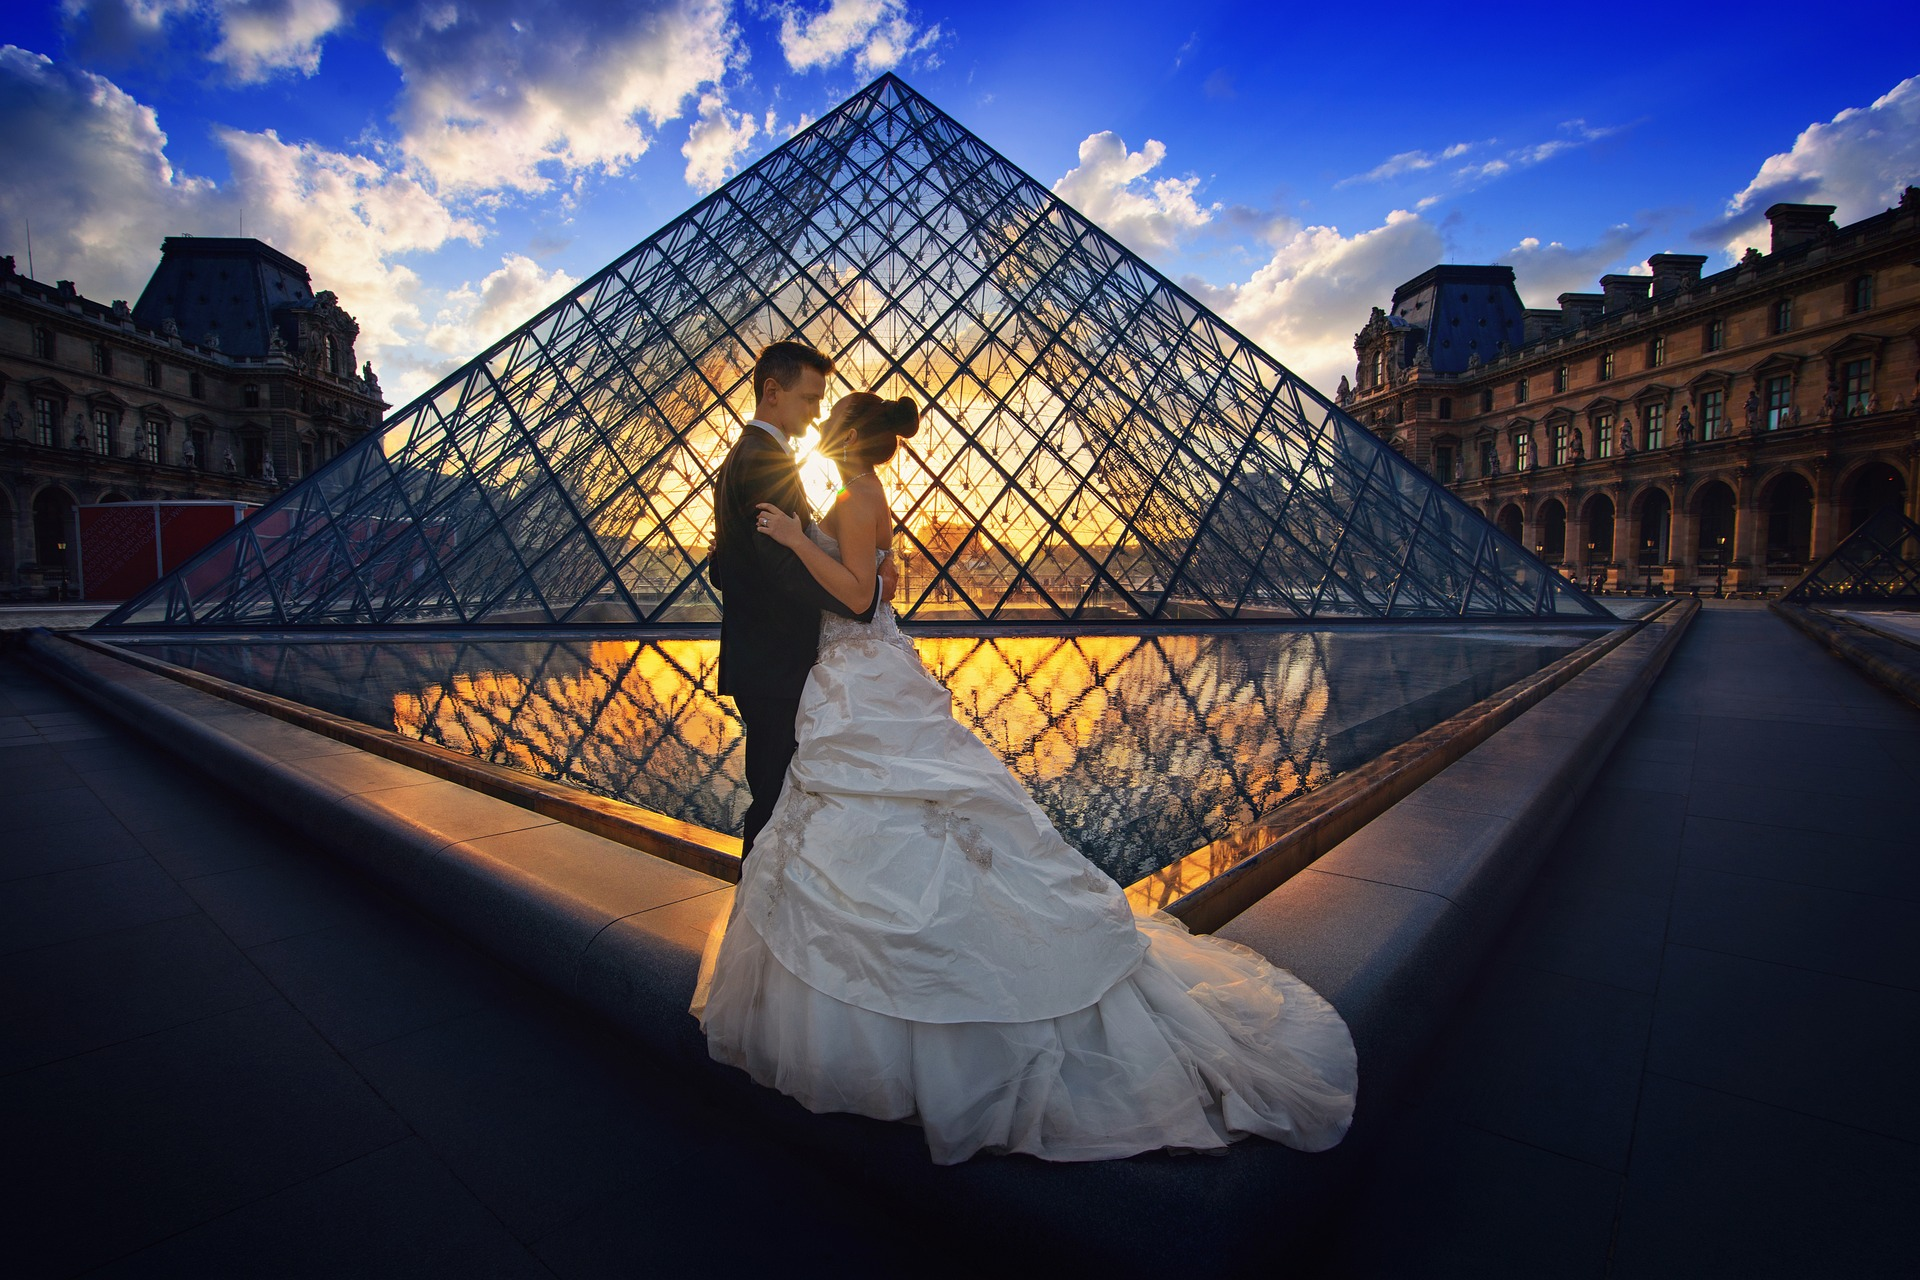 Plan Your Special Honeymoon in These 5 Millennial and Popular Destinations